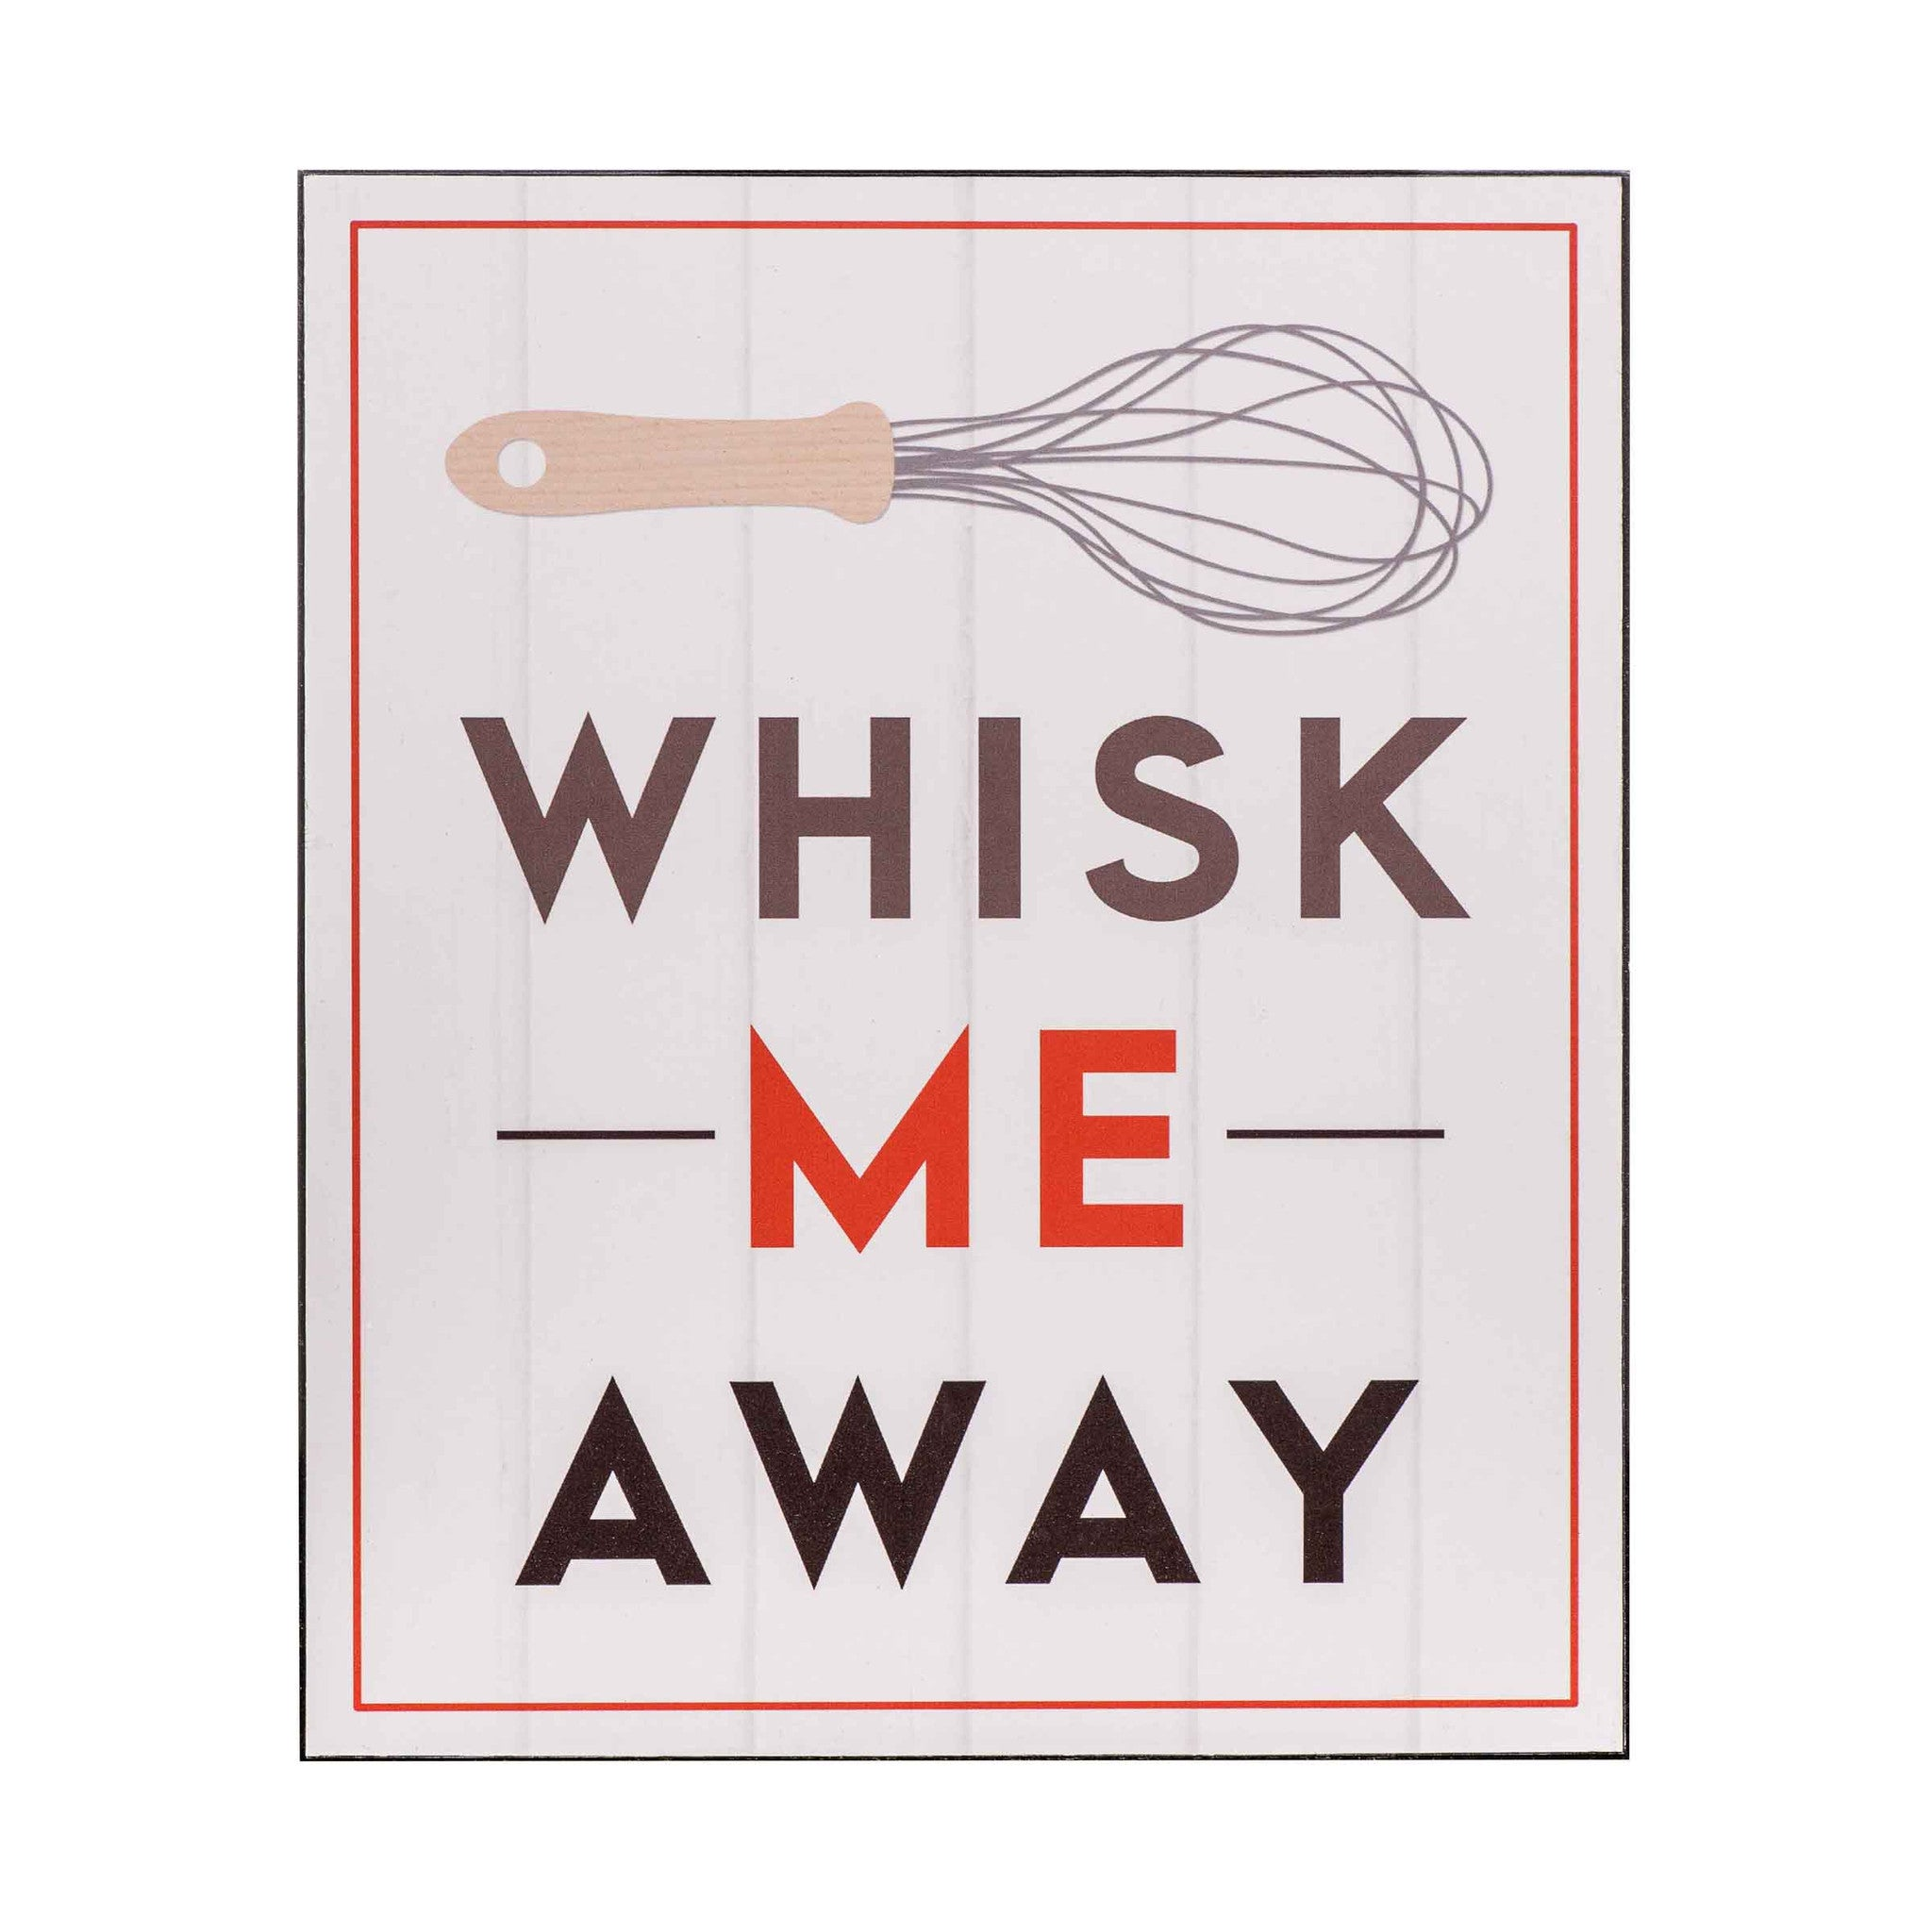 Premier 30x25cm Whisk Me Away Wall Plaque- 2800705 - Homely Nigeria